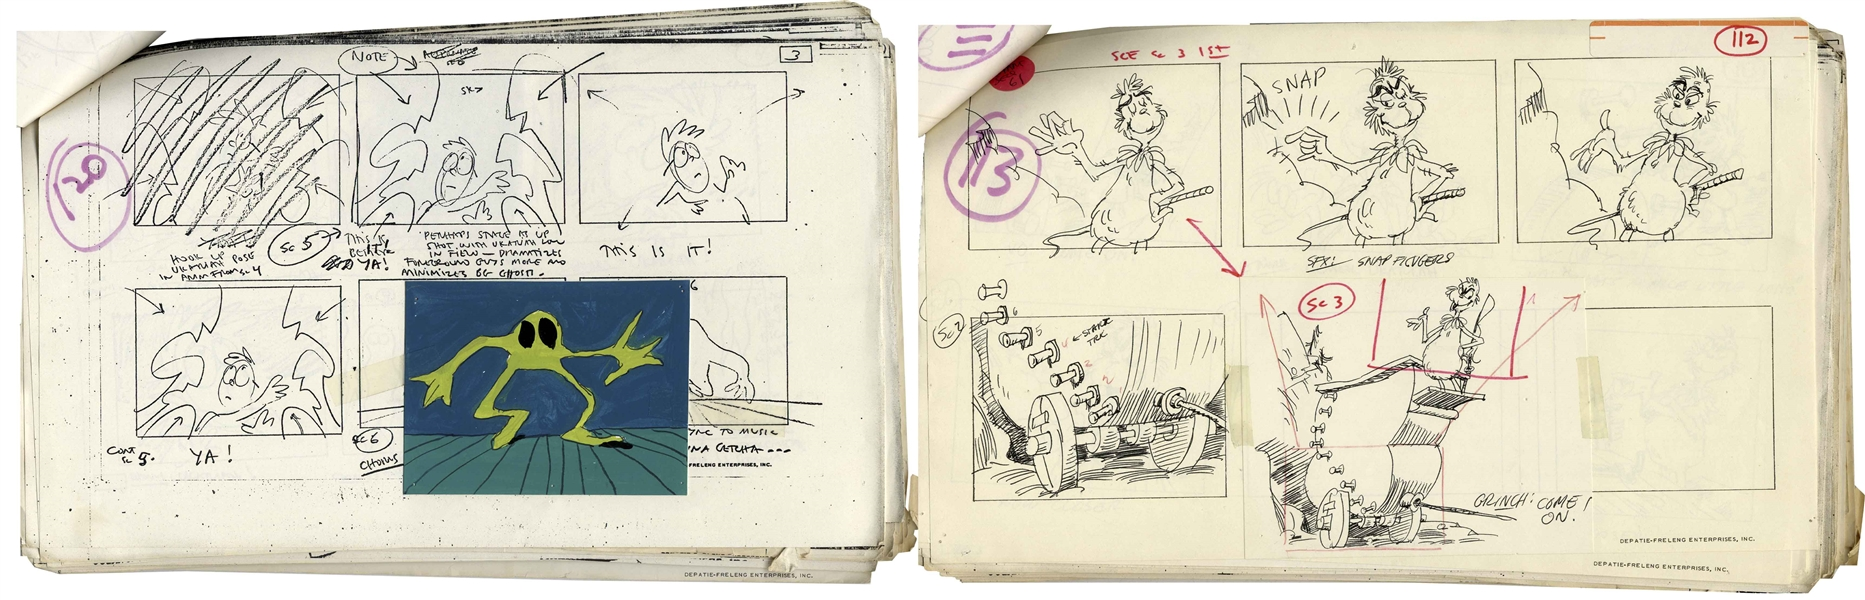 Original 1977 Storyboards for the Dr. Seuss ''Halloween Is Grinch Night'' Special -- Over 150 Pages of Graphic Storyboard Art With Narration Matching the Emmy Winning TV Special